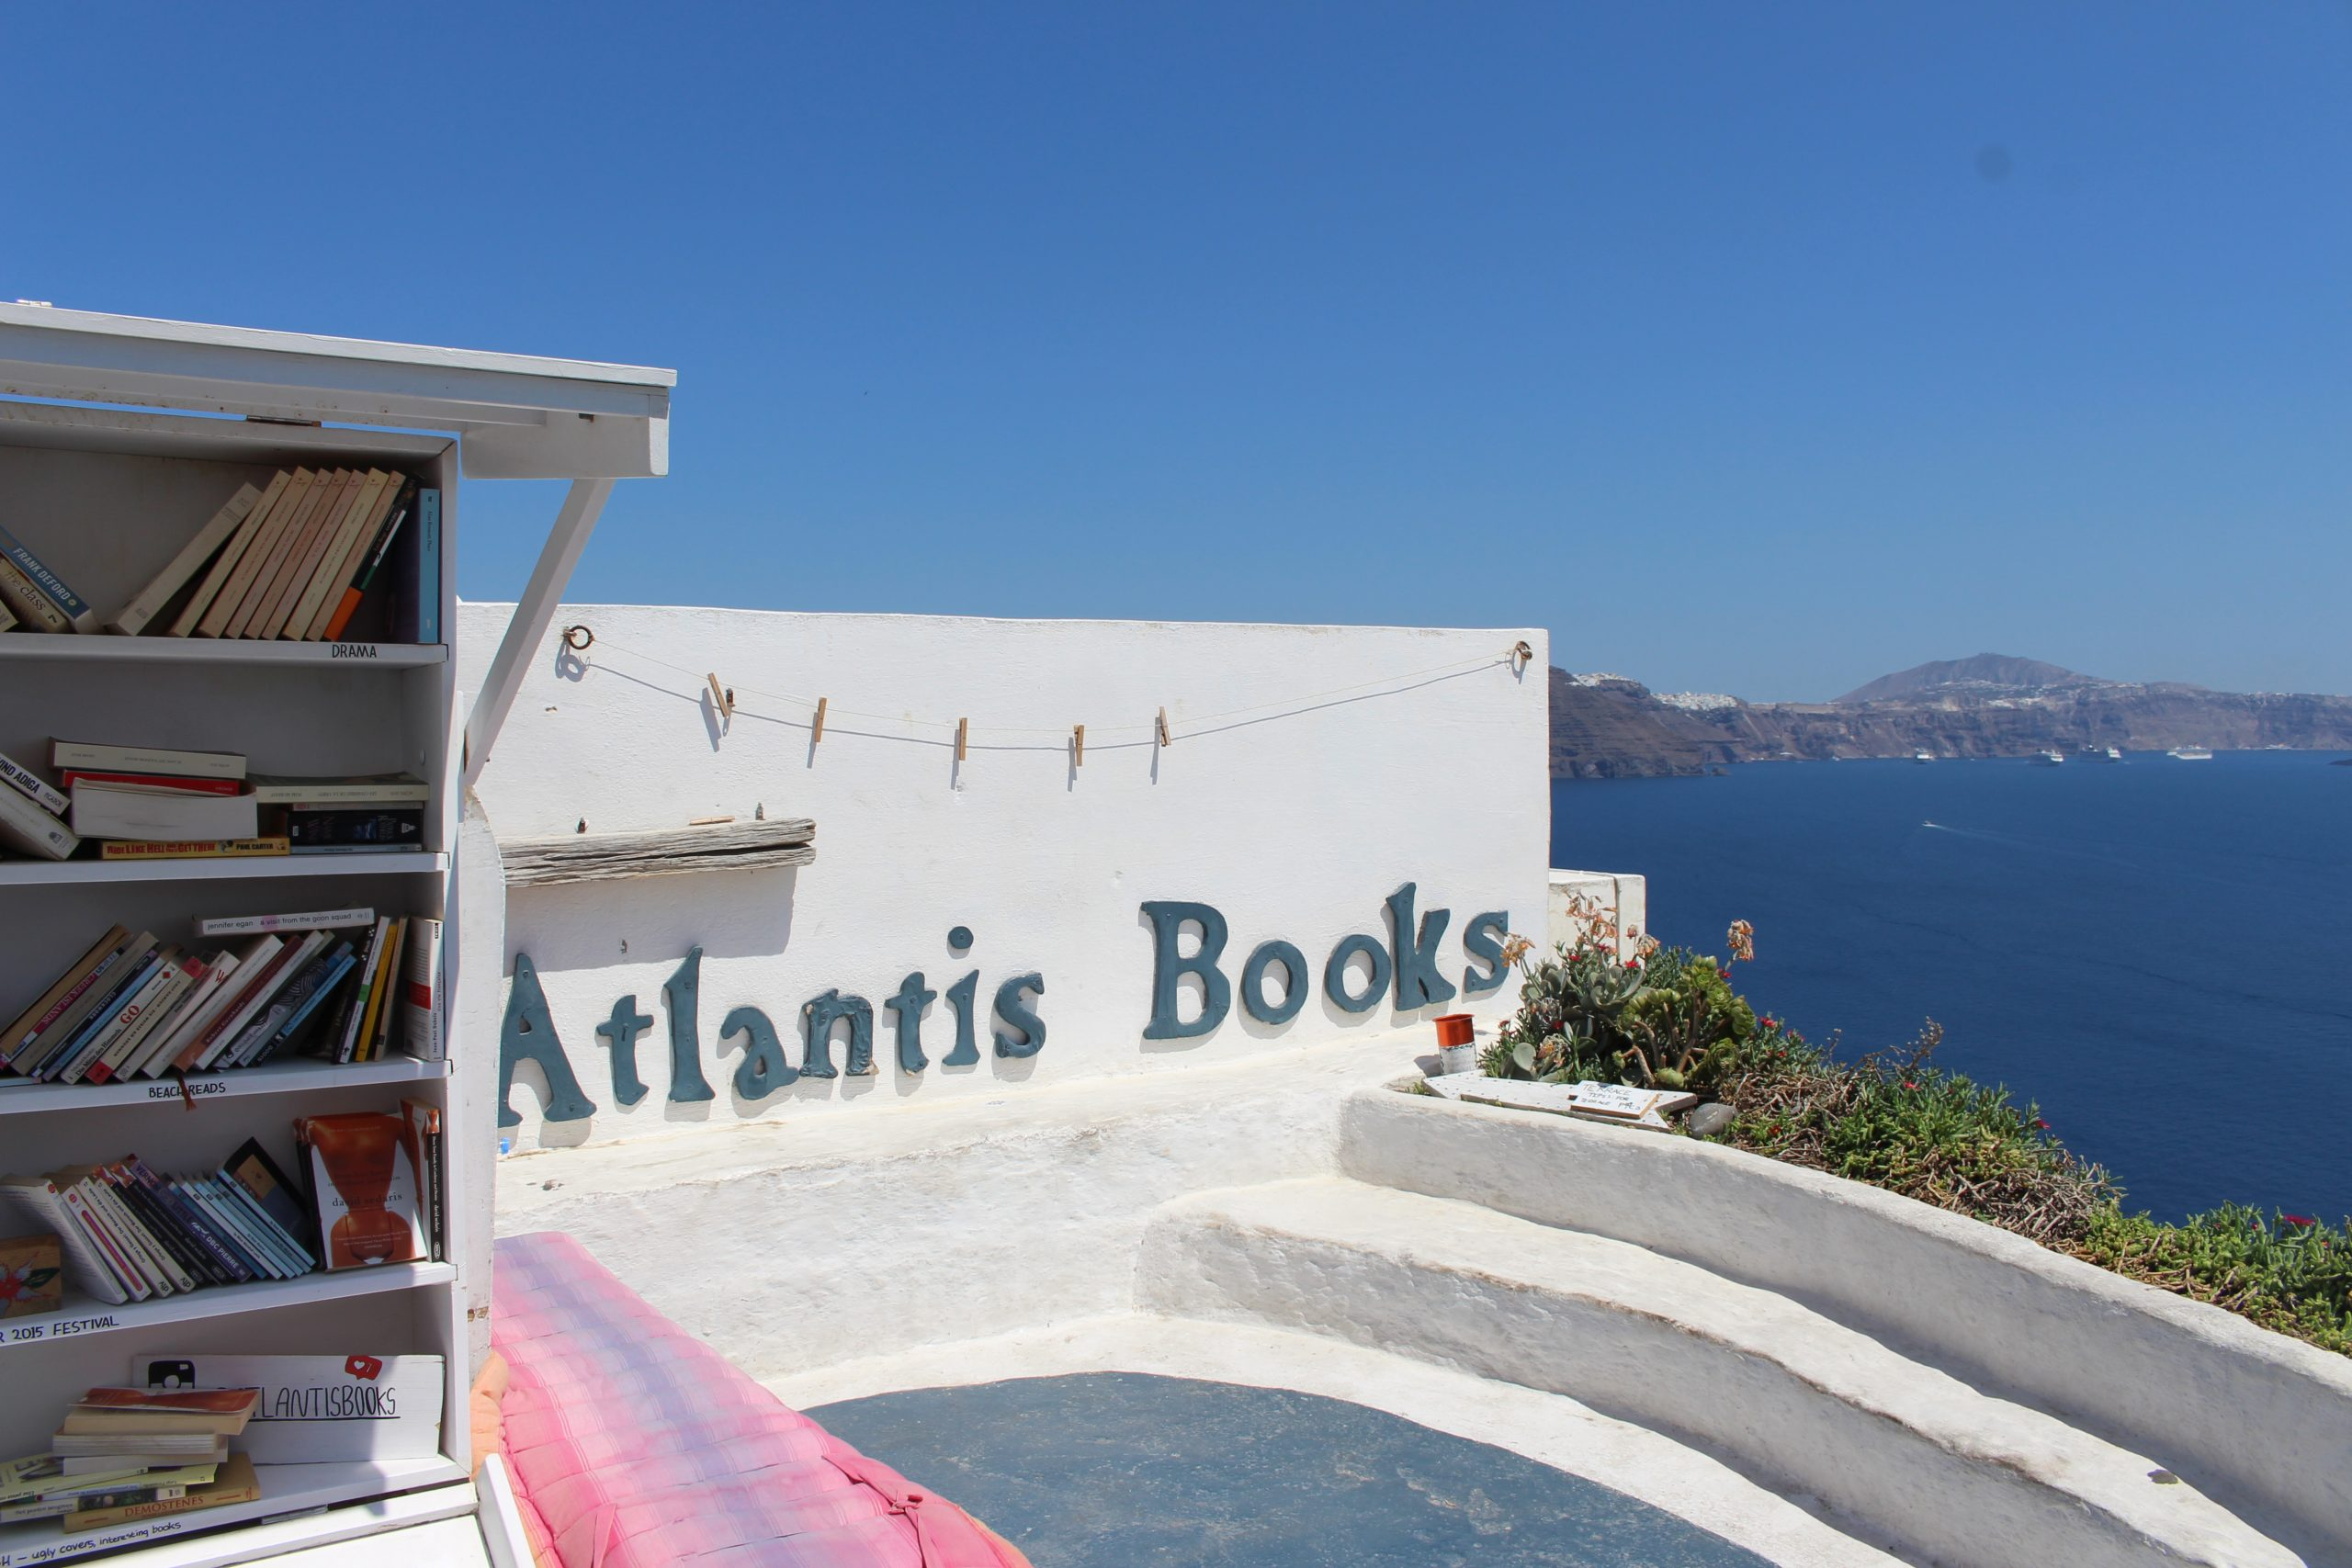 atlantis_books_santorini